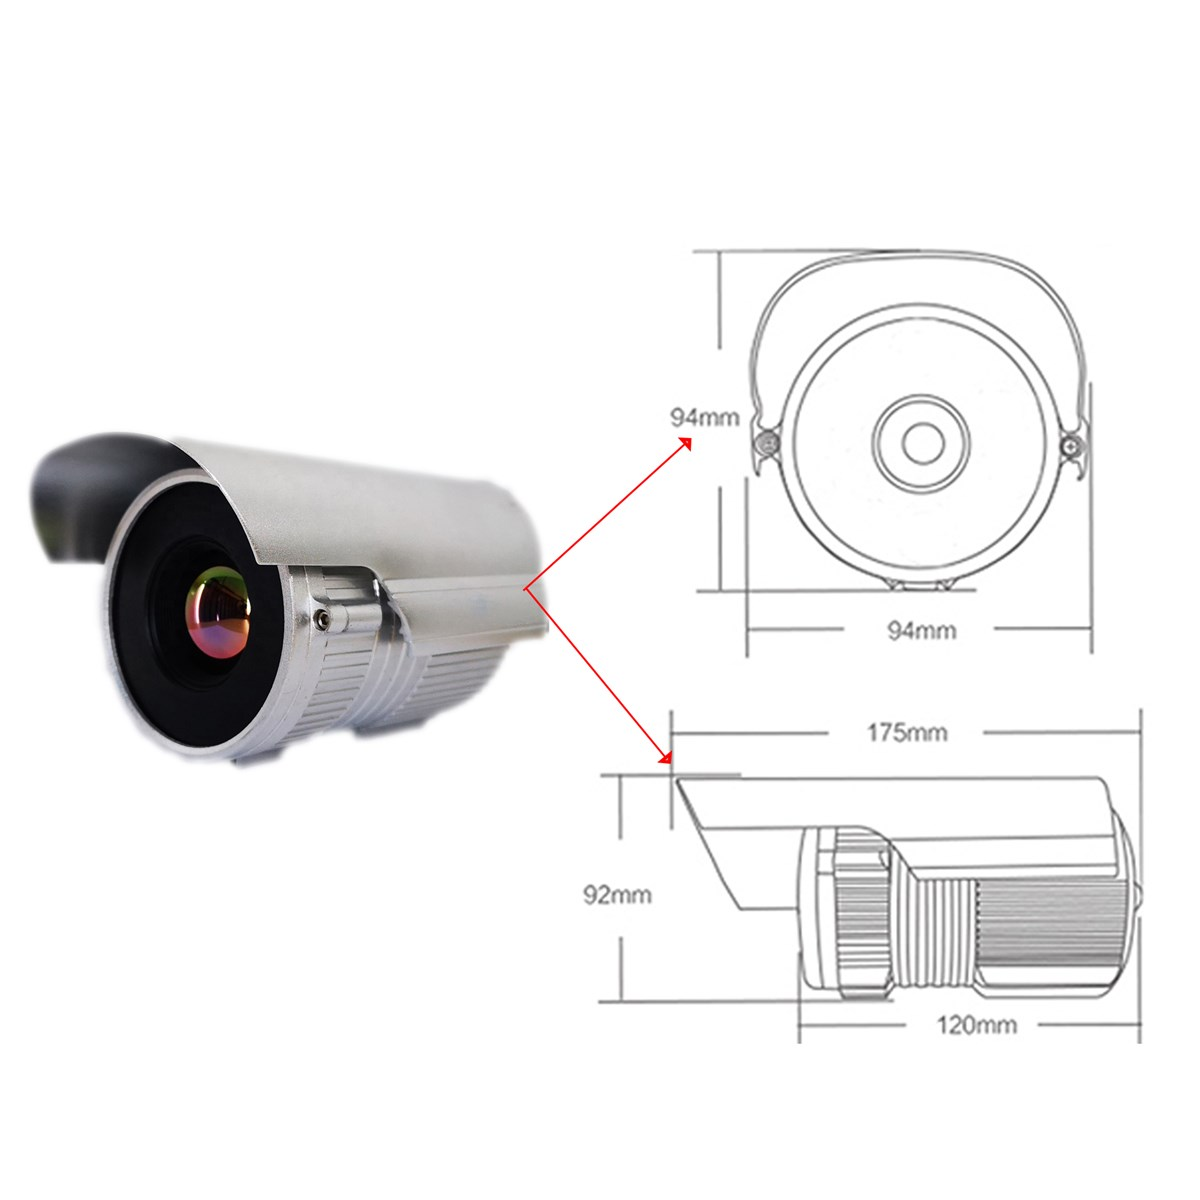 uncooled infrared thermal imaging cctv surveillance IP camera